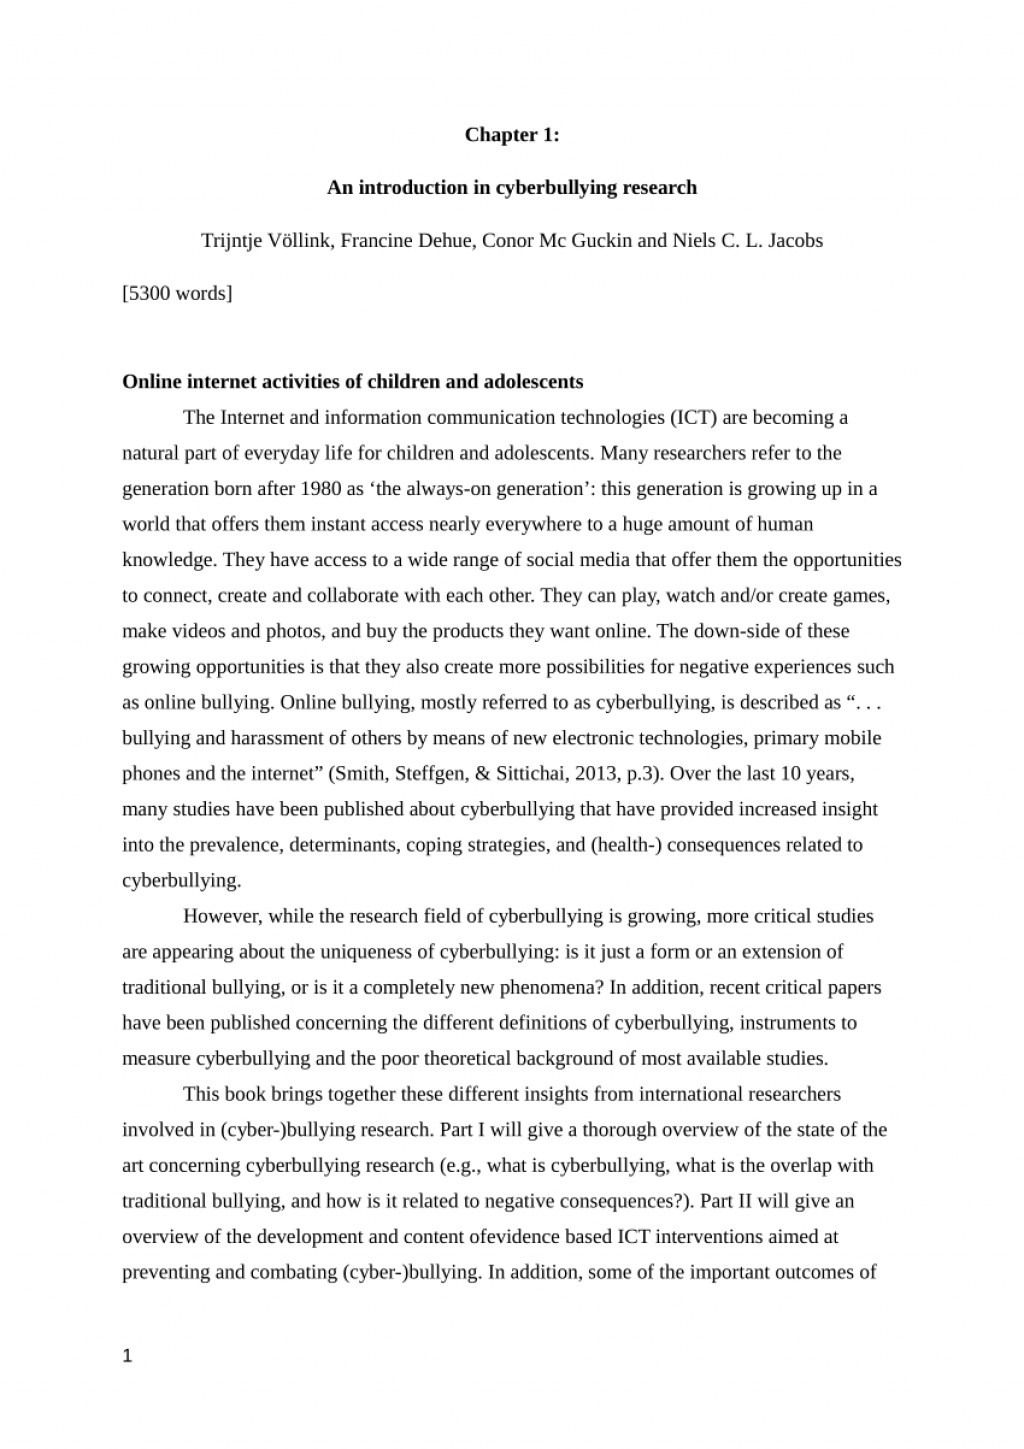 001 Research Paper Cyberbullying Introduction Magnificent Cyber Bullying Paragraph Background Of The Study About Large